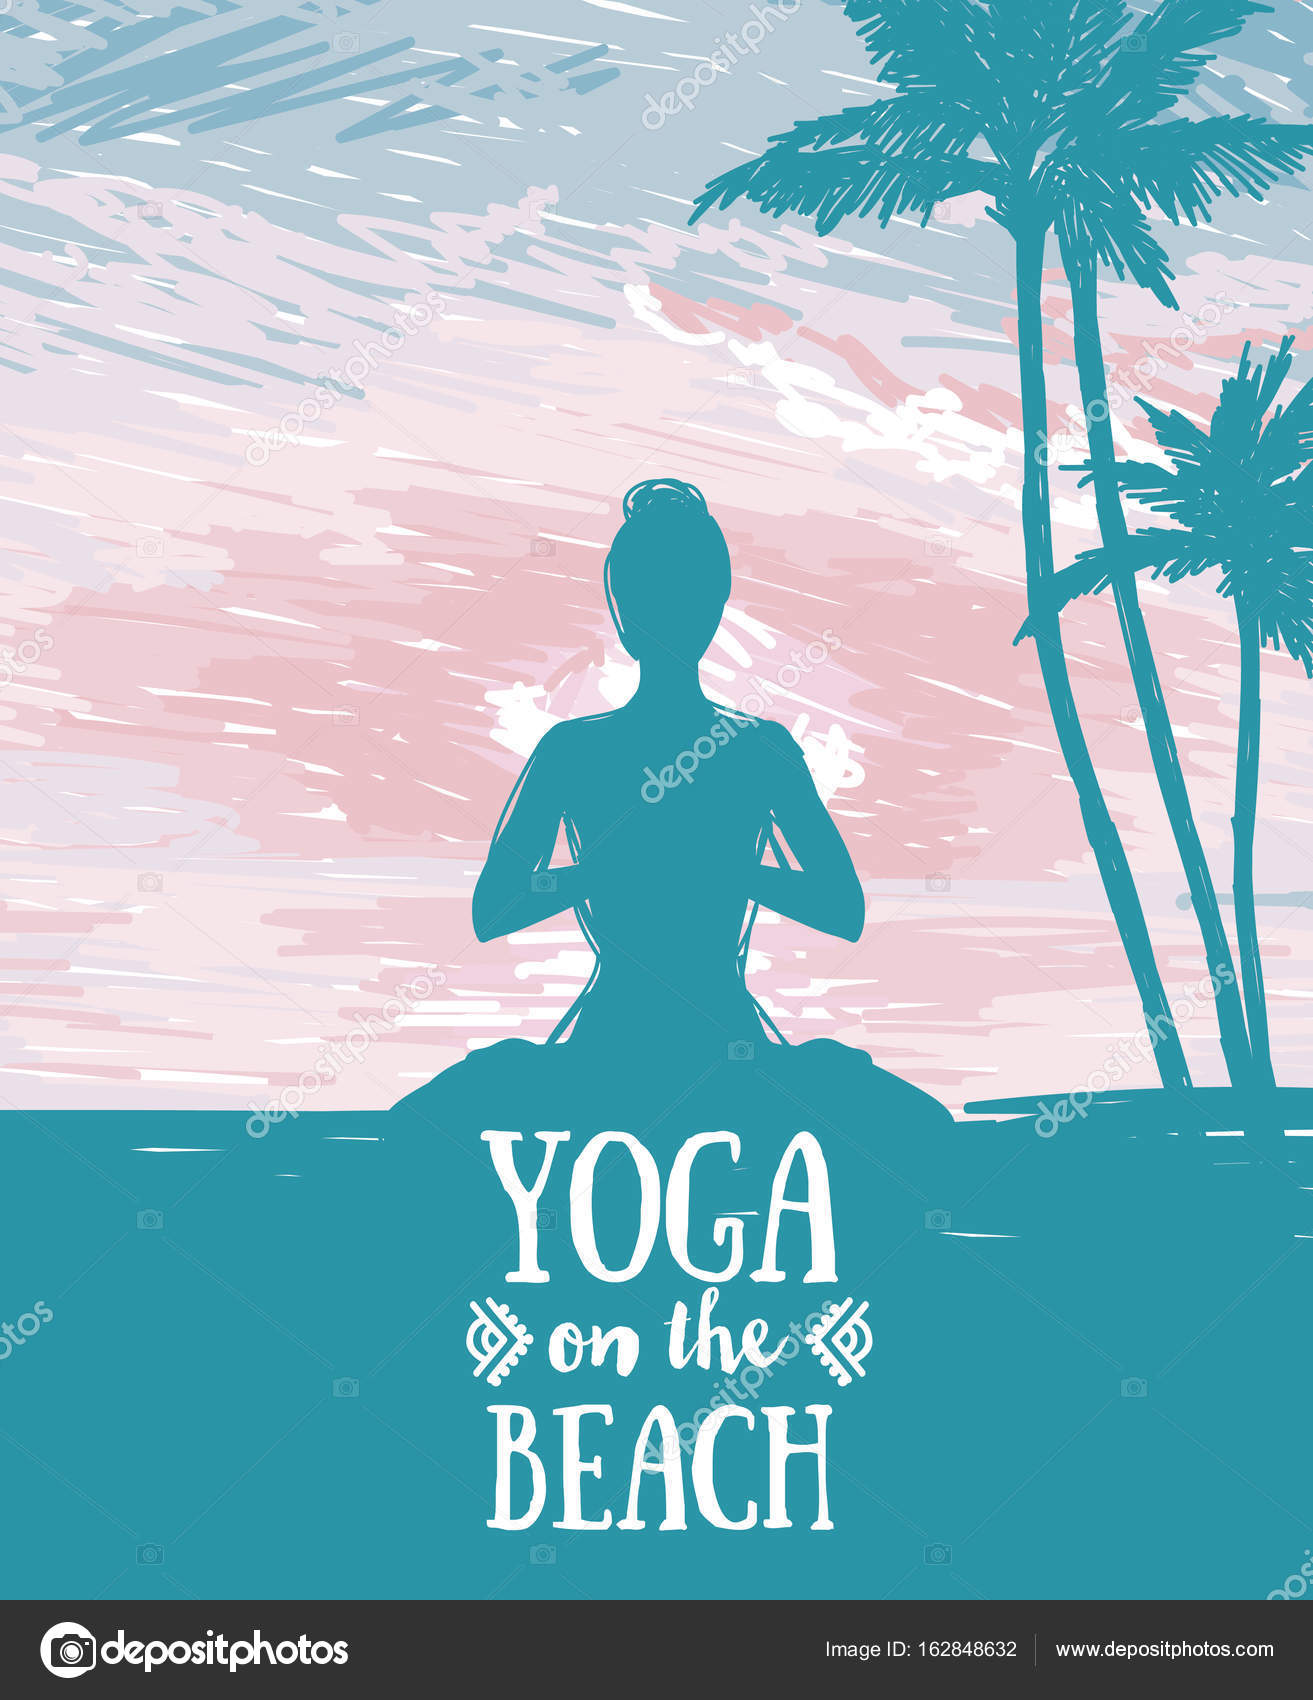 Banner For Yoga And Meditation Practice On The Beach Stock Vector